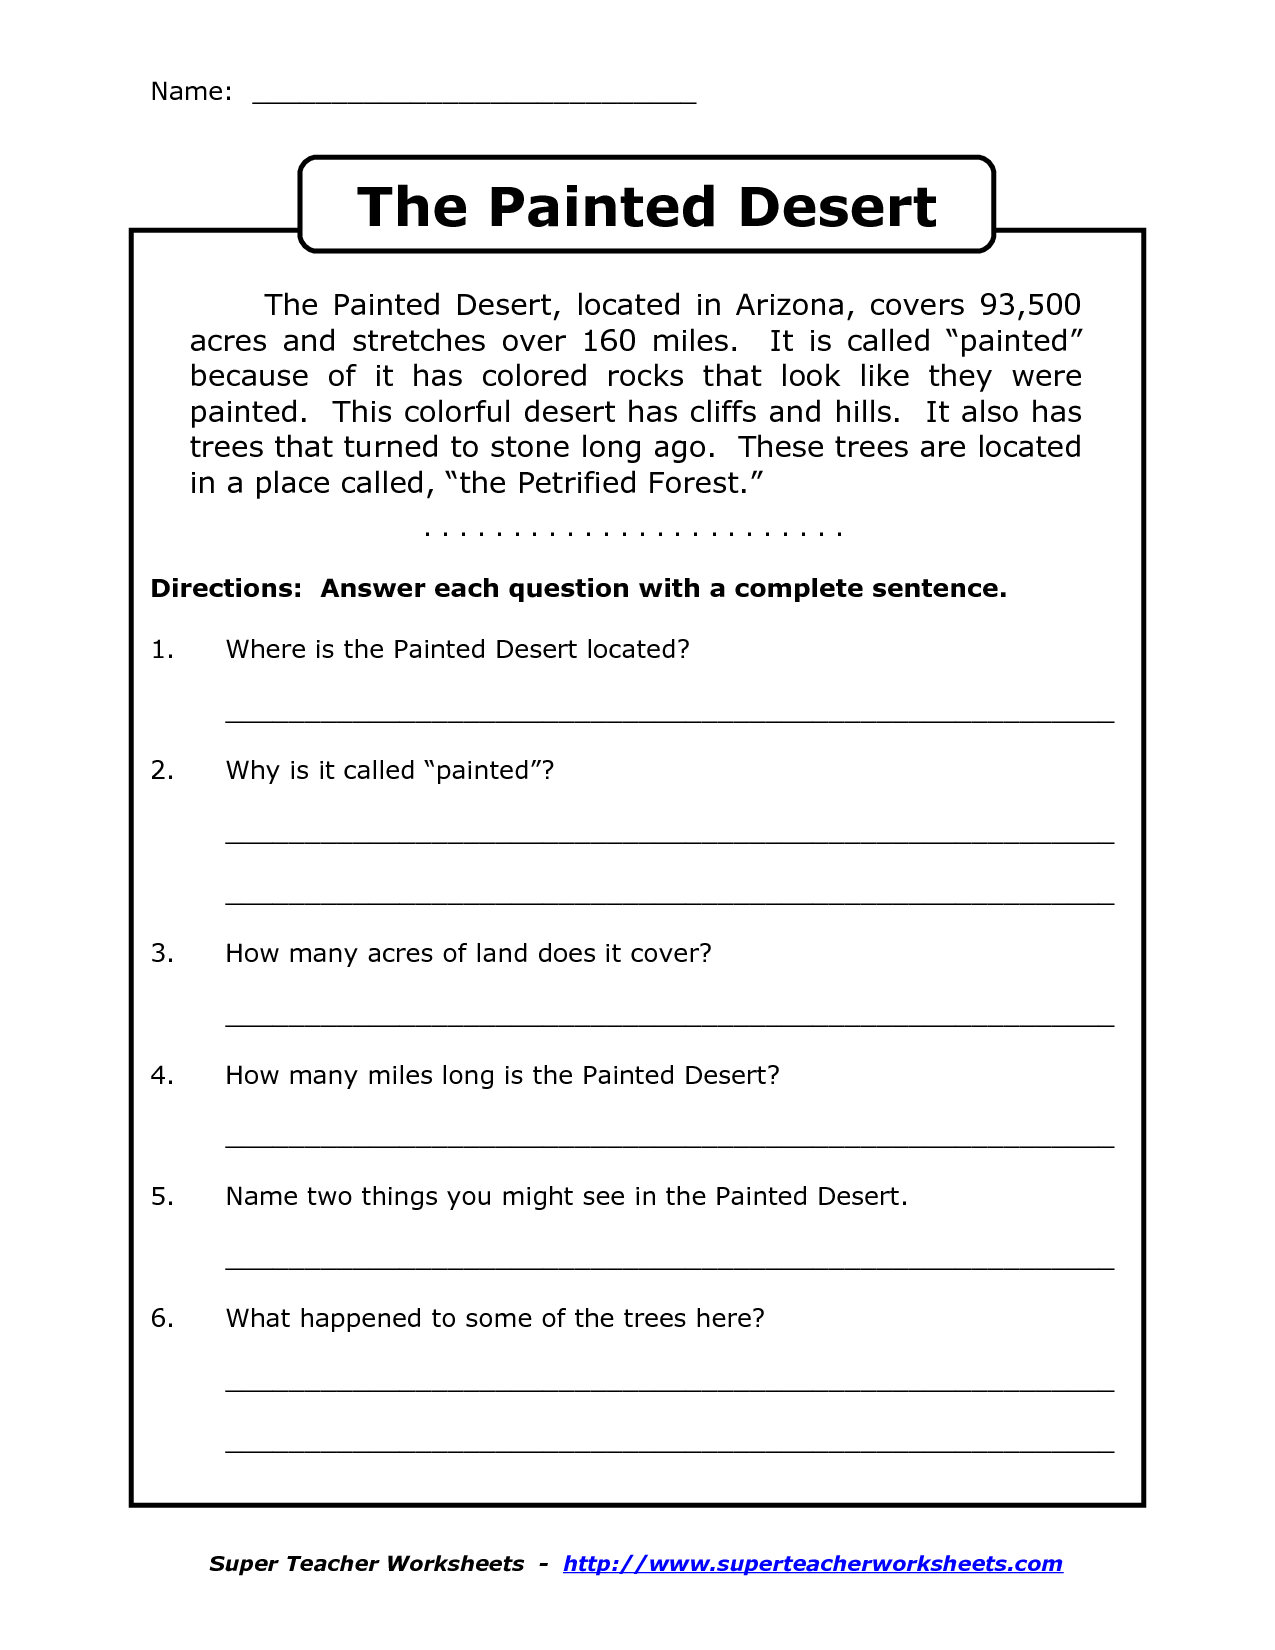 Worksheet Comprehension Passages For Grade 5 worksheet comprehension passage for grade 5 mikyu free reading worksheets 3 311276 png scalien